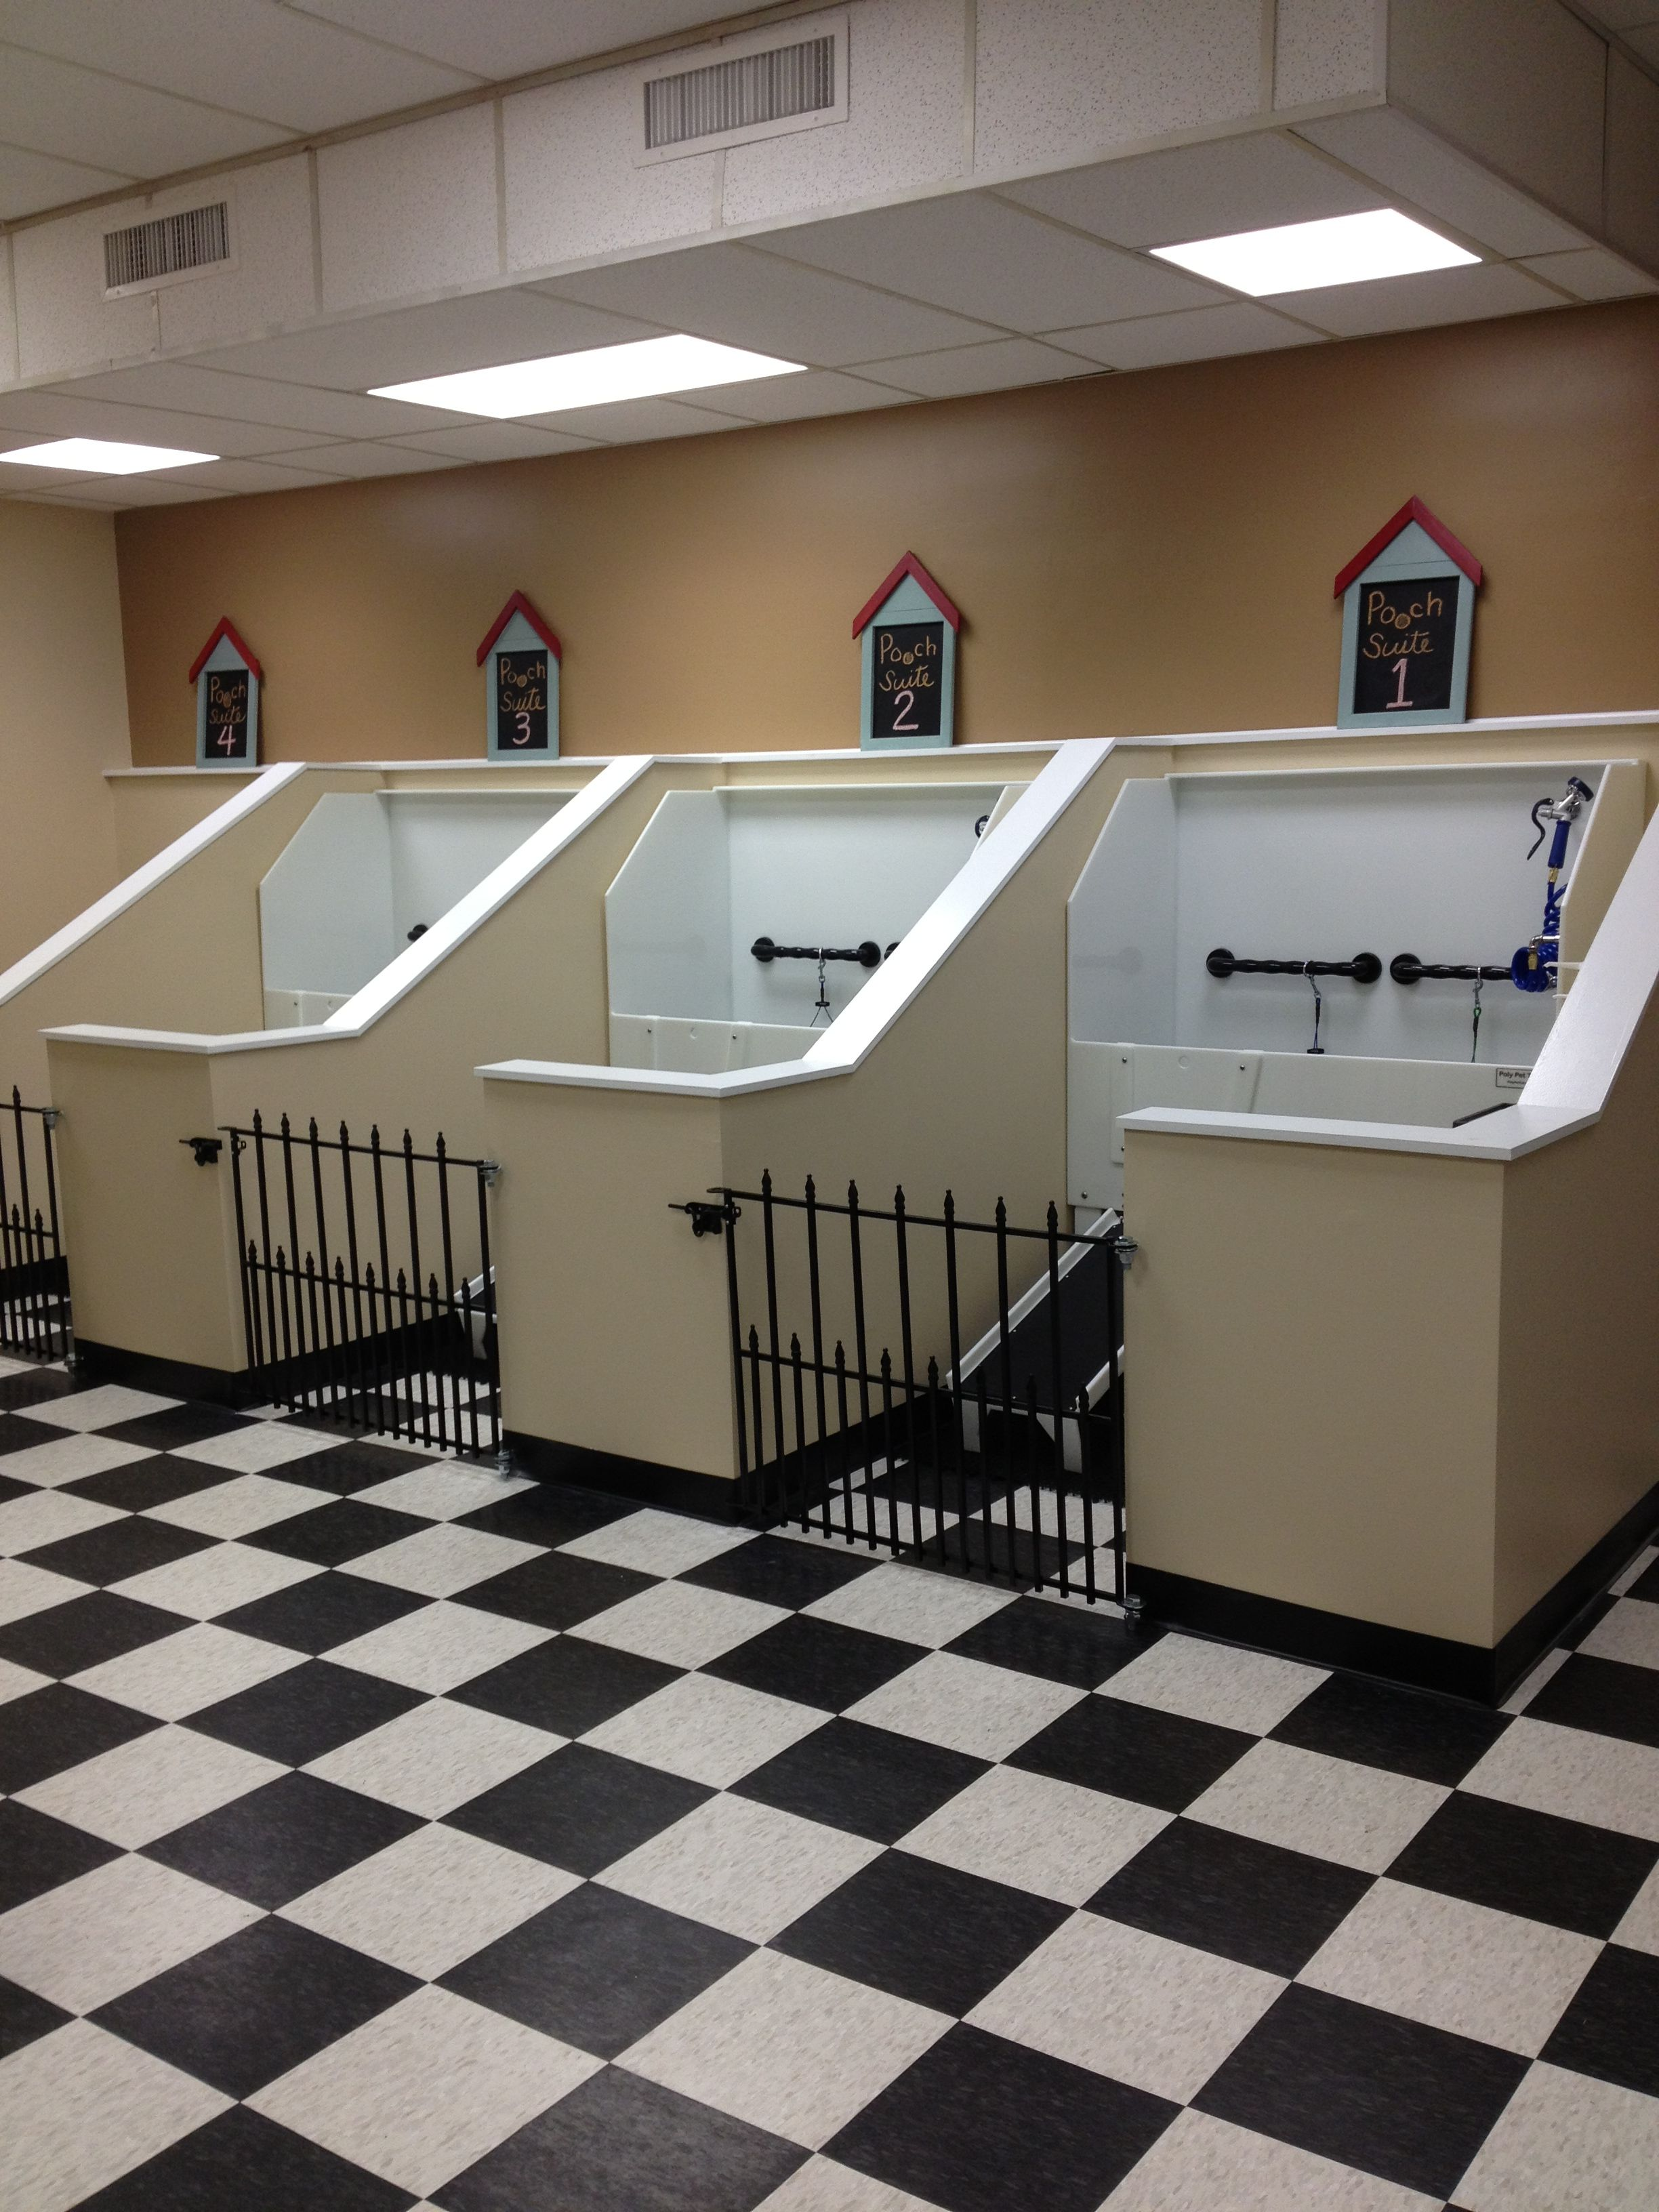 Repinned self service dog wash tub stalls at the dashing pooch repinned self service dog wash tub stalls at the dashing pooch solutioingenieria Image collections